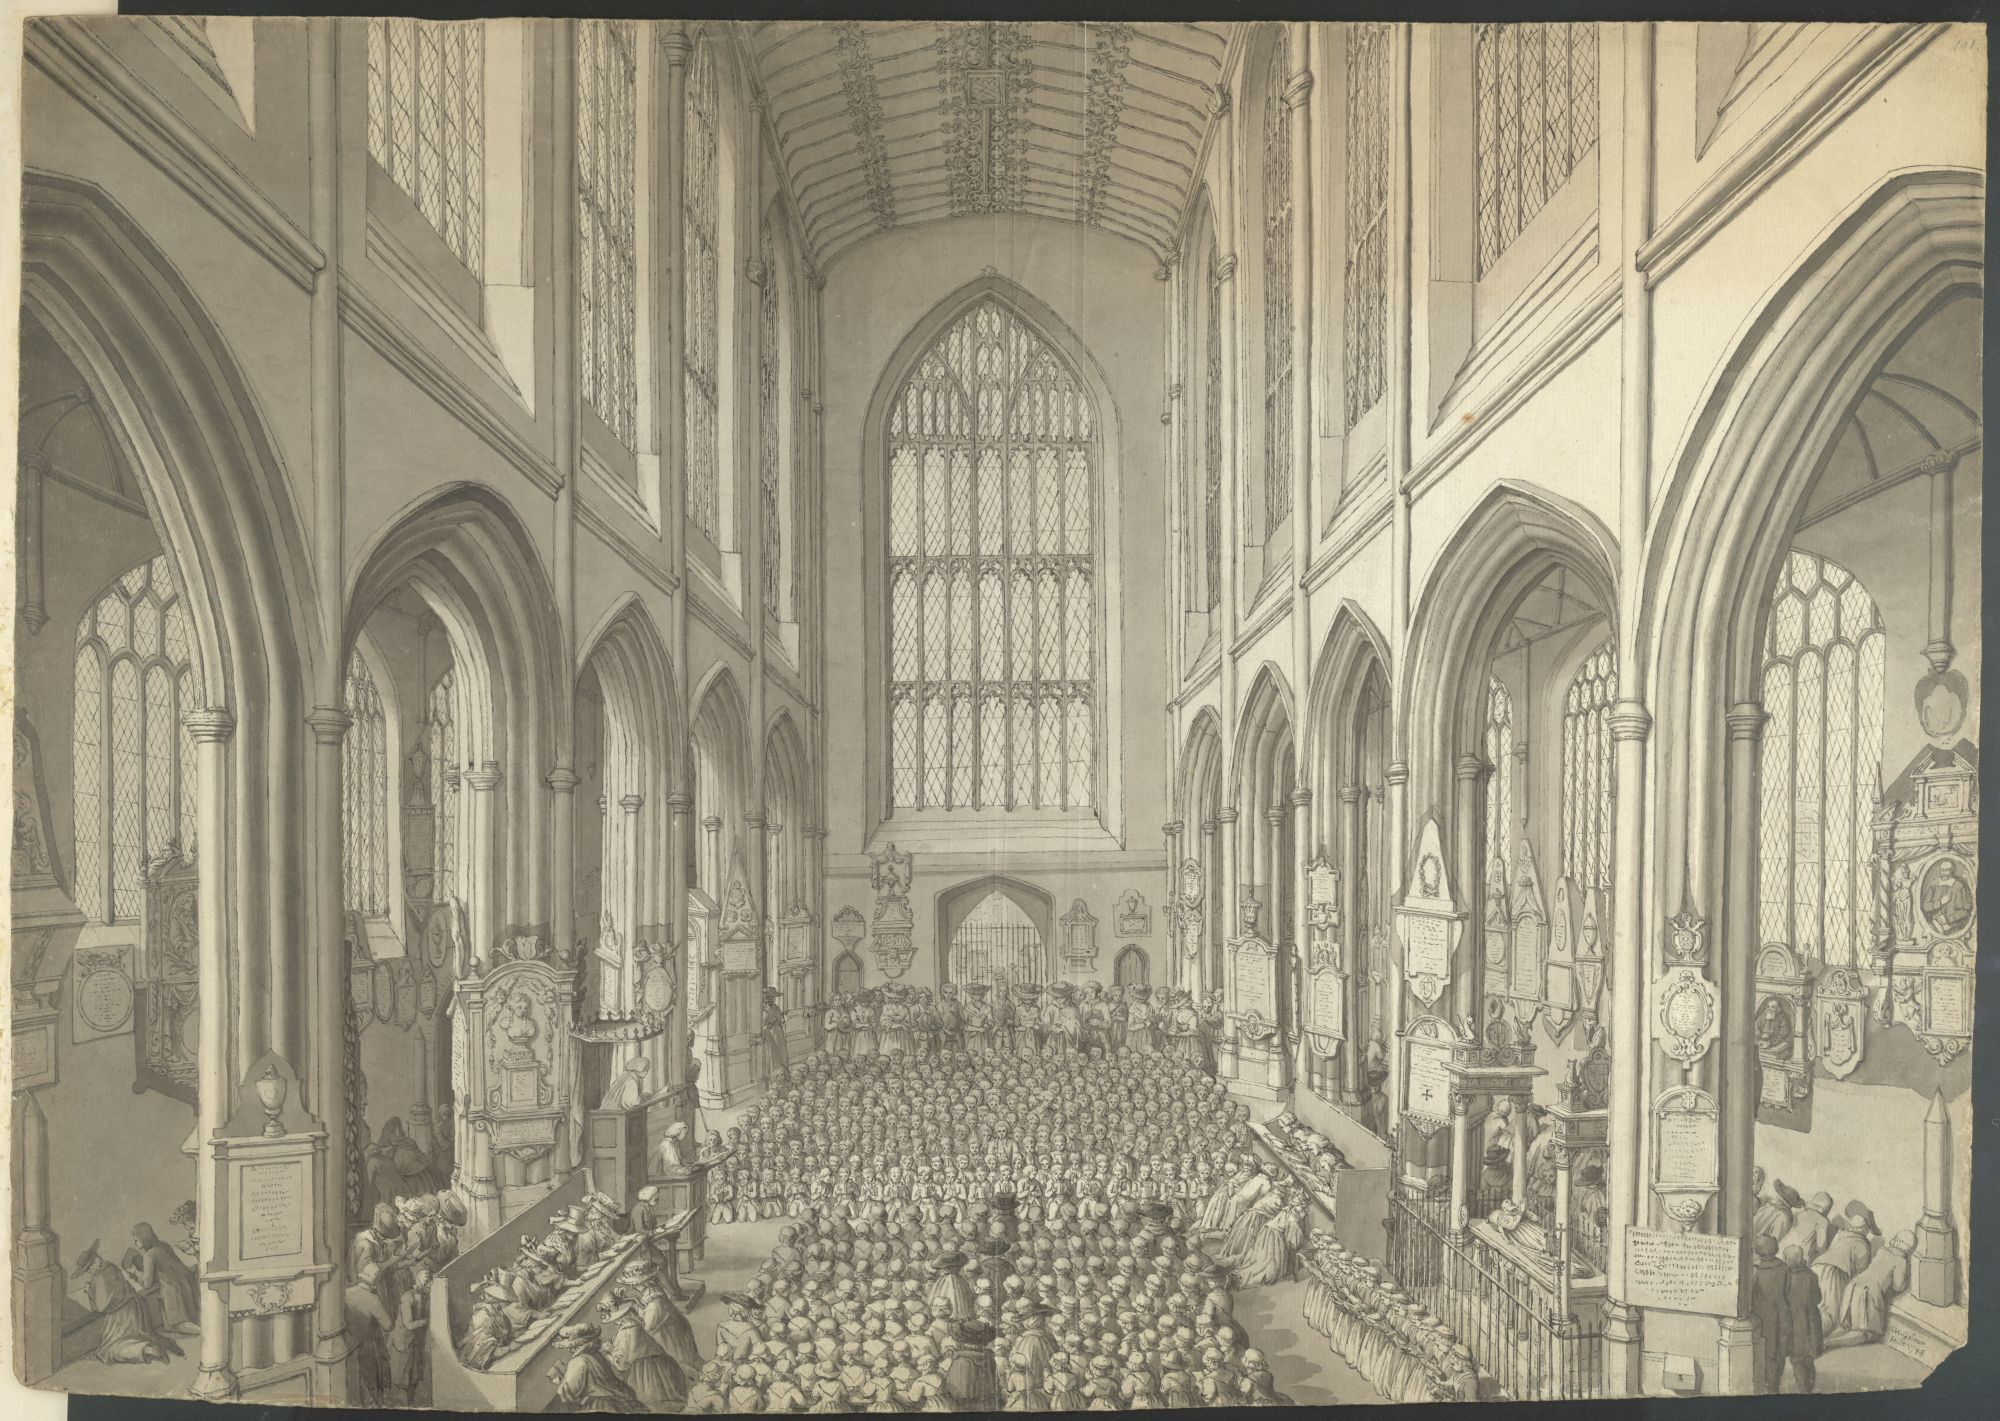 A view of a service in Bath Abbey by Samuel Hieronymus Grimm.